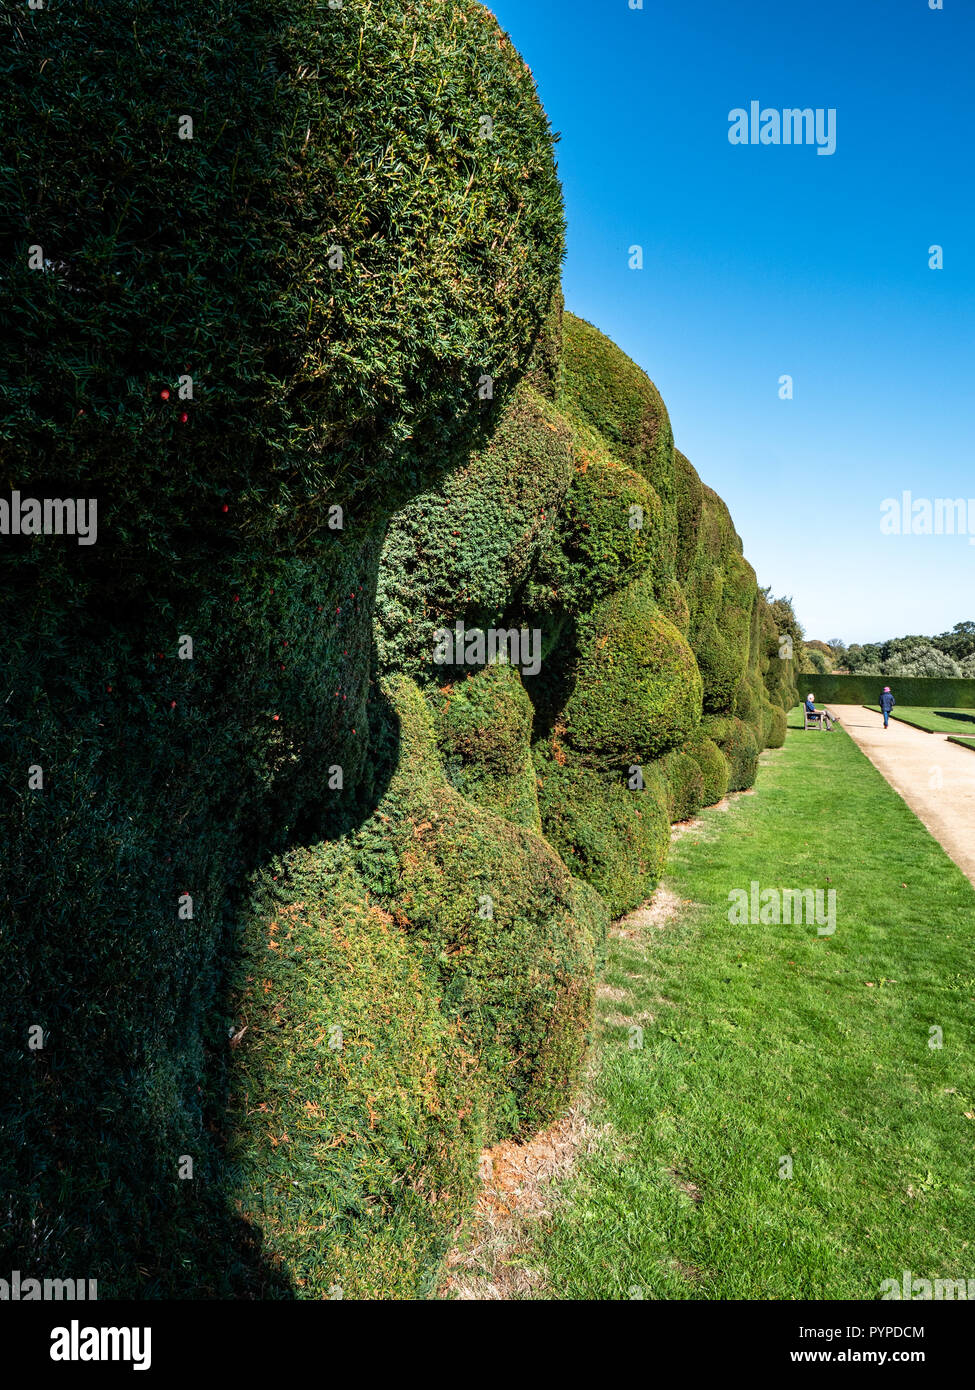 Ancient yew hedge bordering the formal gardens at Montacute House in Somerset UK morphed into fantastical shapes over years of pruning - Stock Image